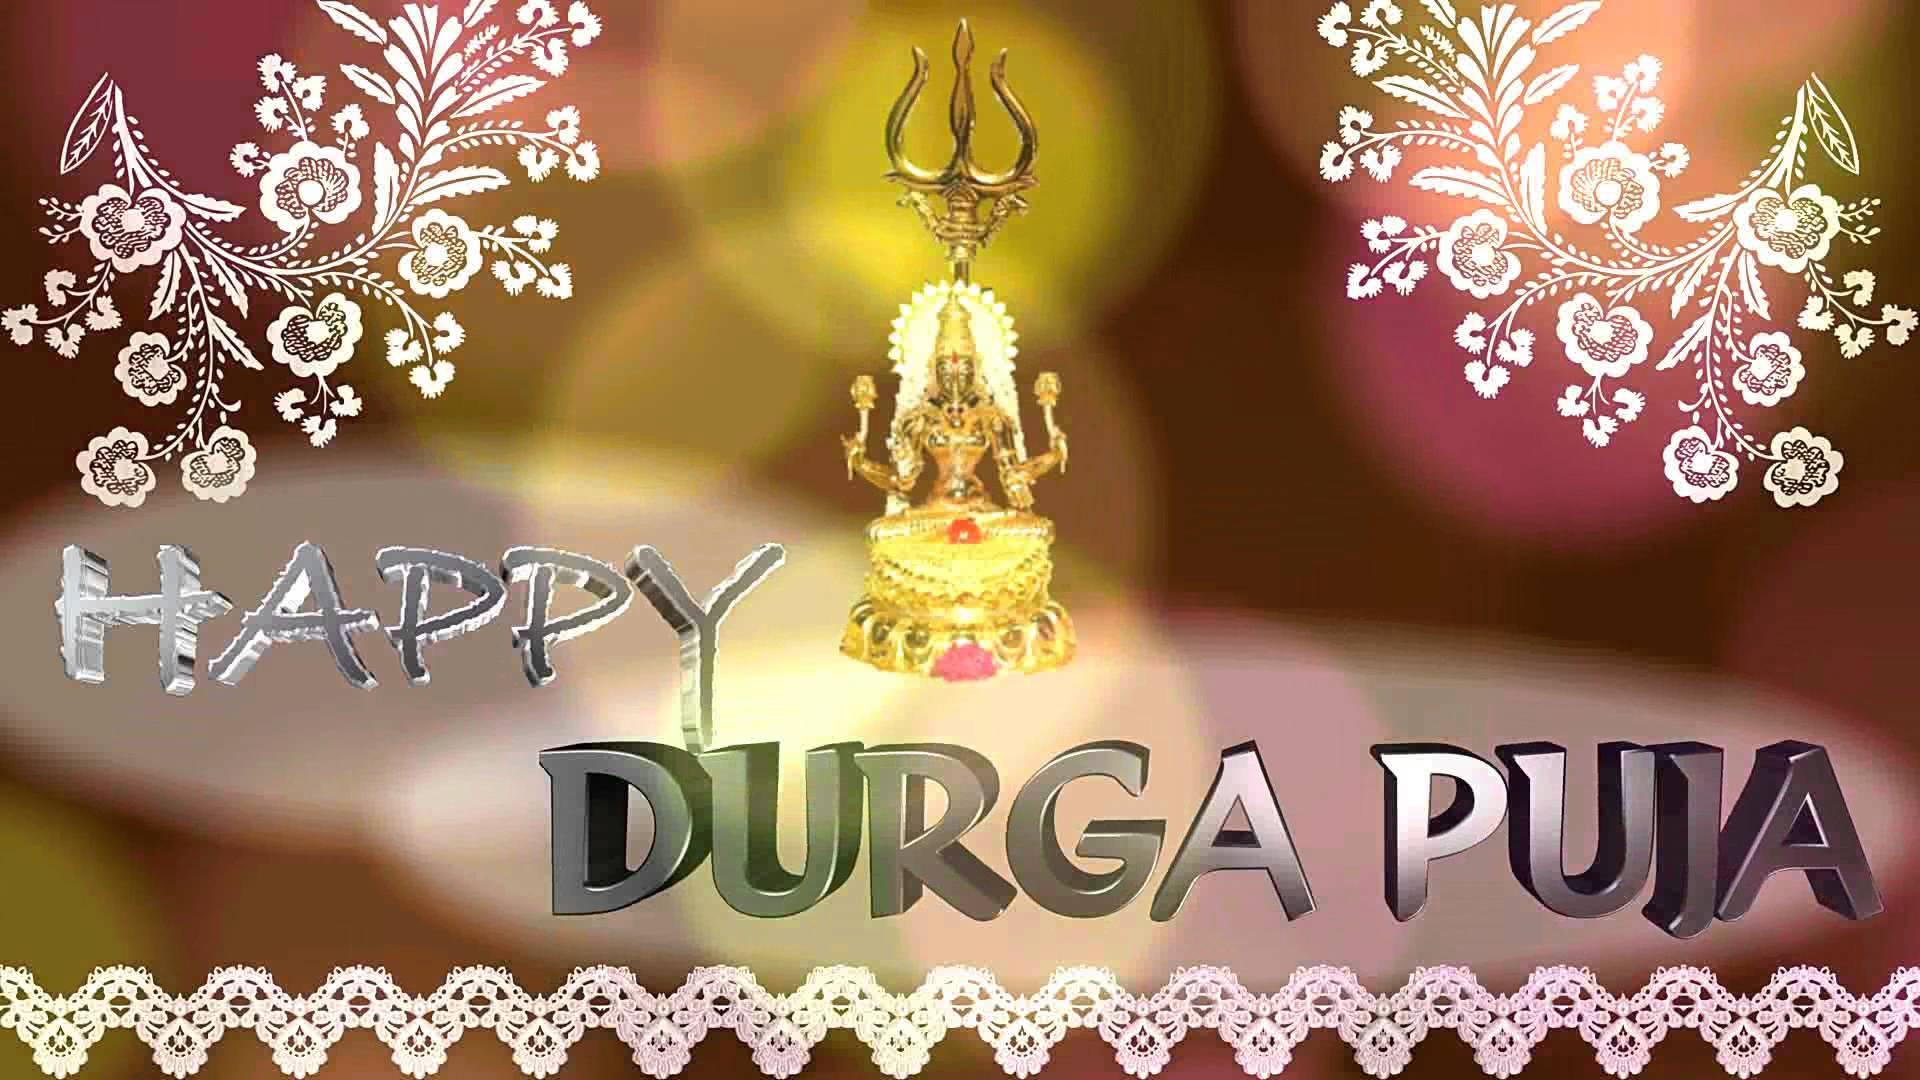 60 best durga puja greeting ideas on askideas happy durga puja 2017 wallpaper kristyandbryce Images